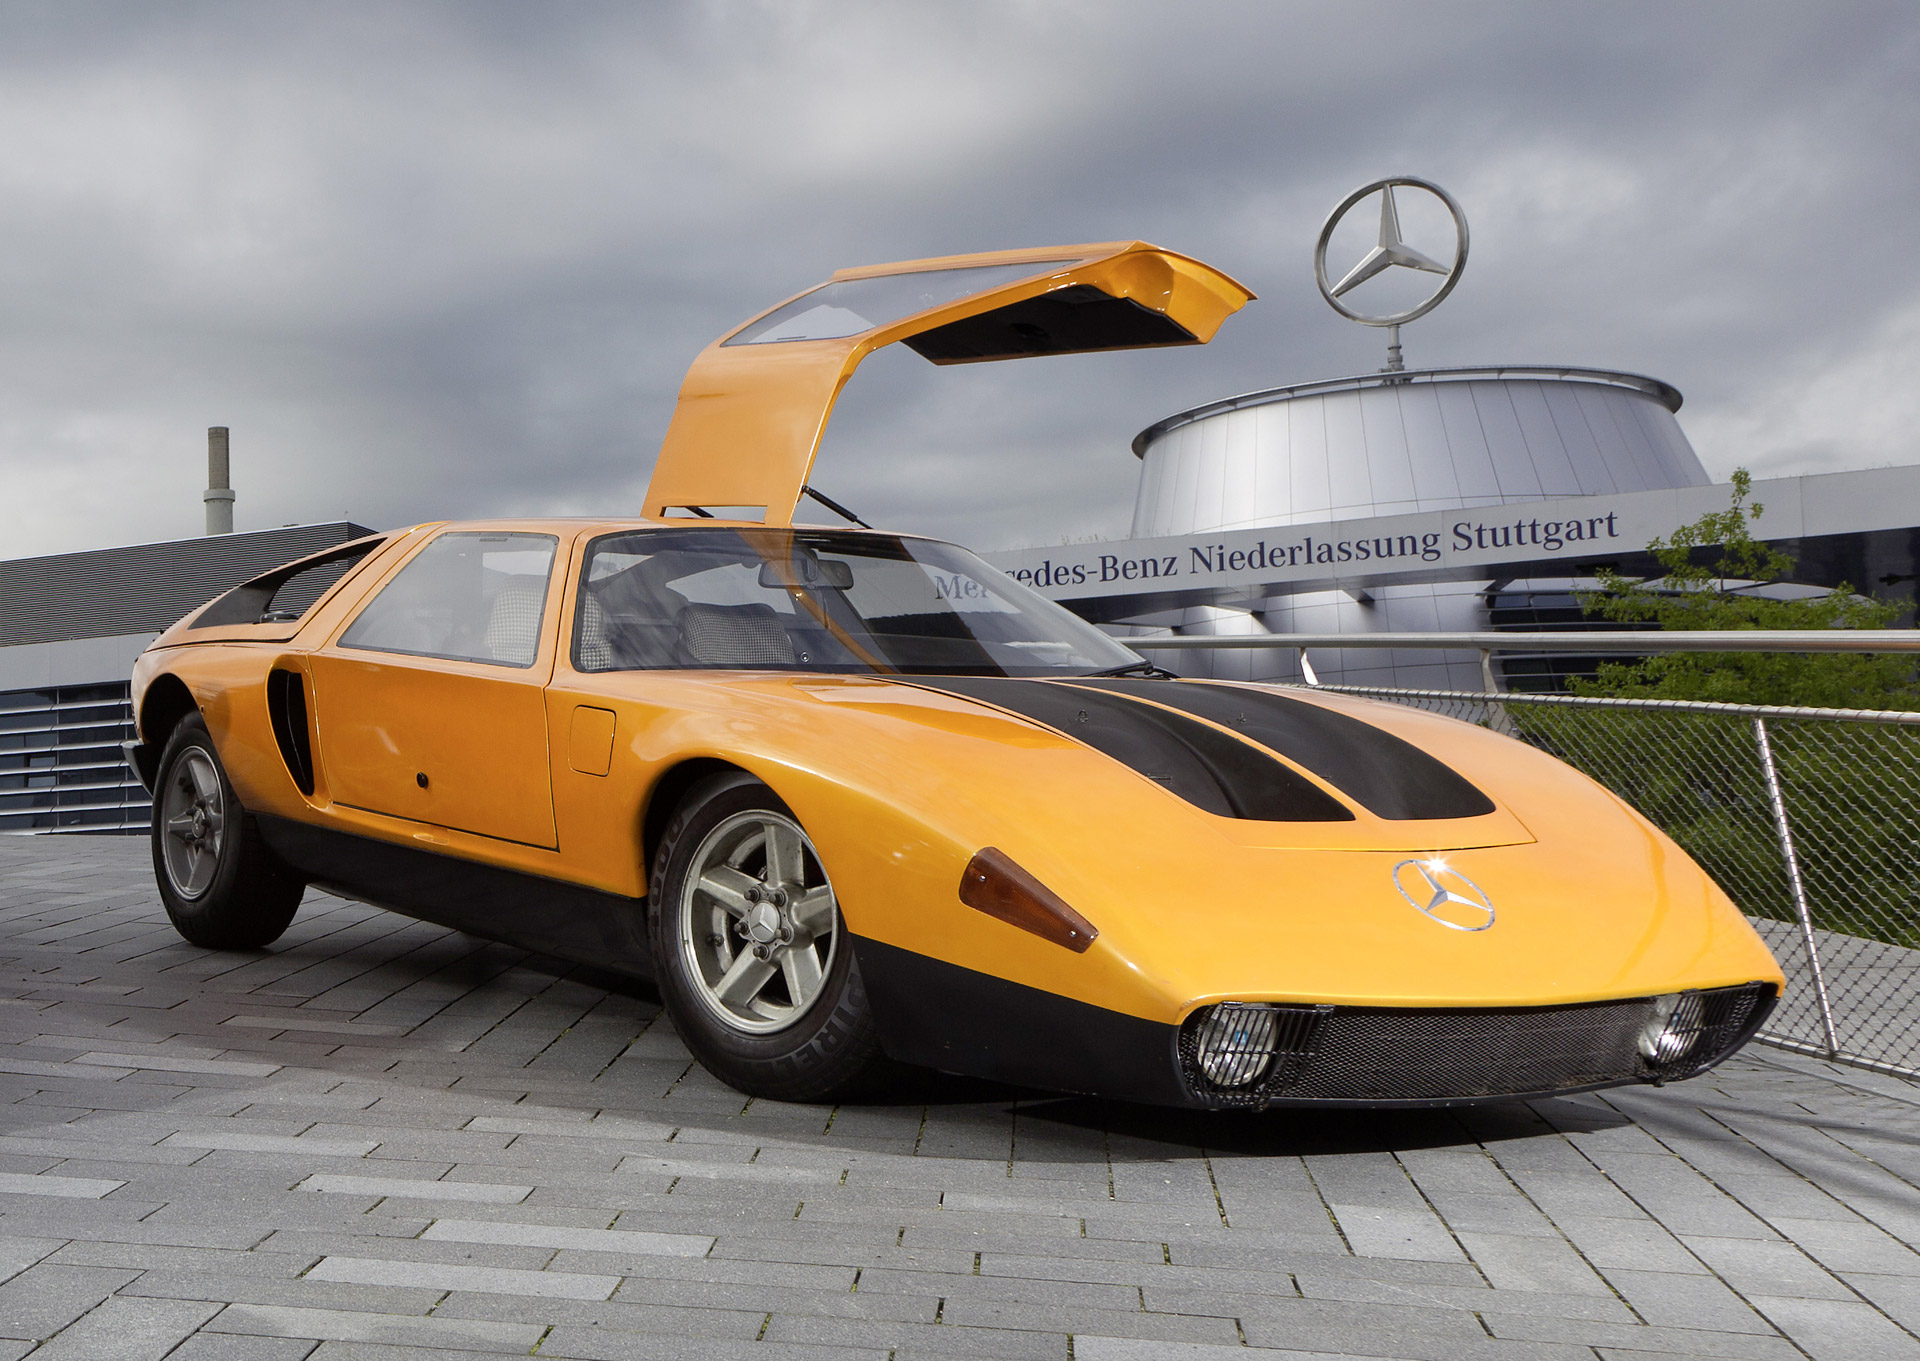 Hyundai Spy Shots >> Mercedes-Benz C111 Drops By Jay Leno's Garage: Video